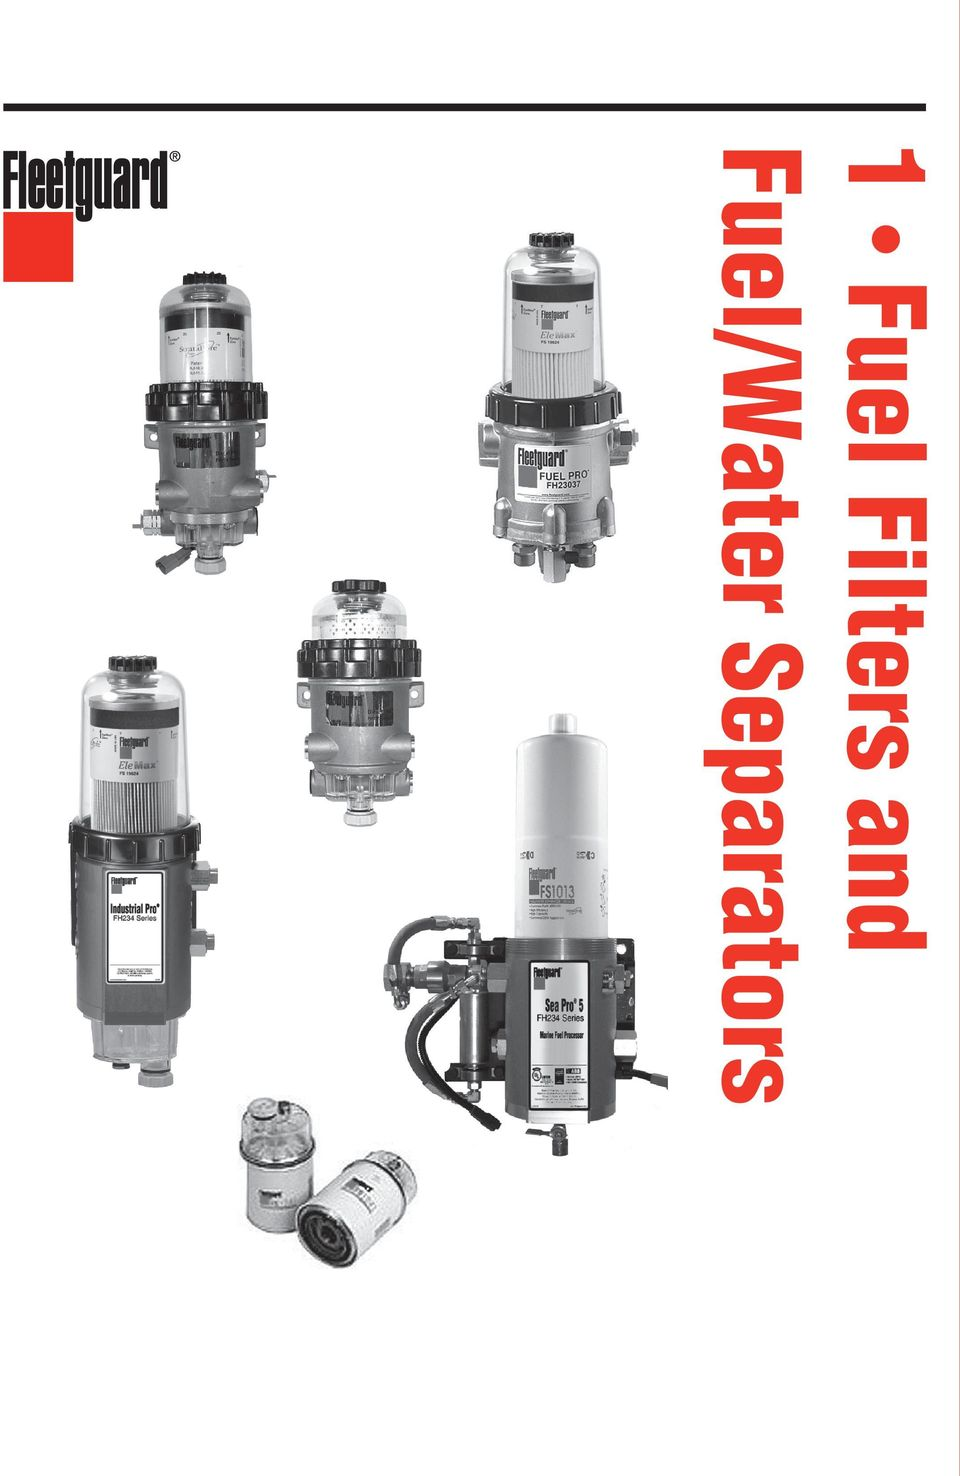 1 Fuel Filters And Water Separators Pdf Compact 2 Introduction Suggested Filtration Systems By Engine Size Filter Elements Application Diverter Caps Diesel Pro